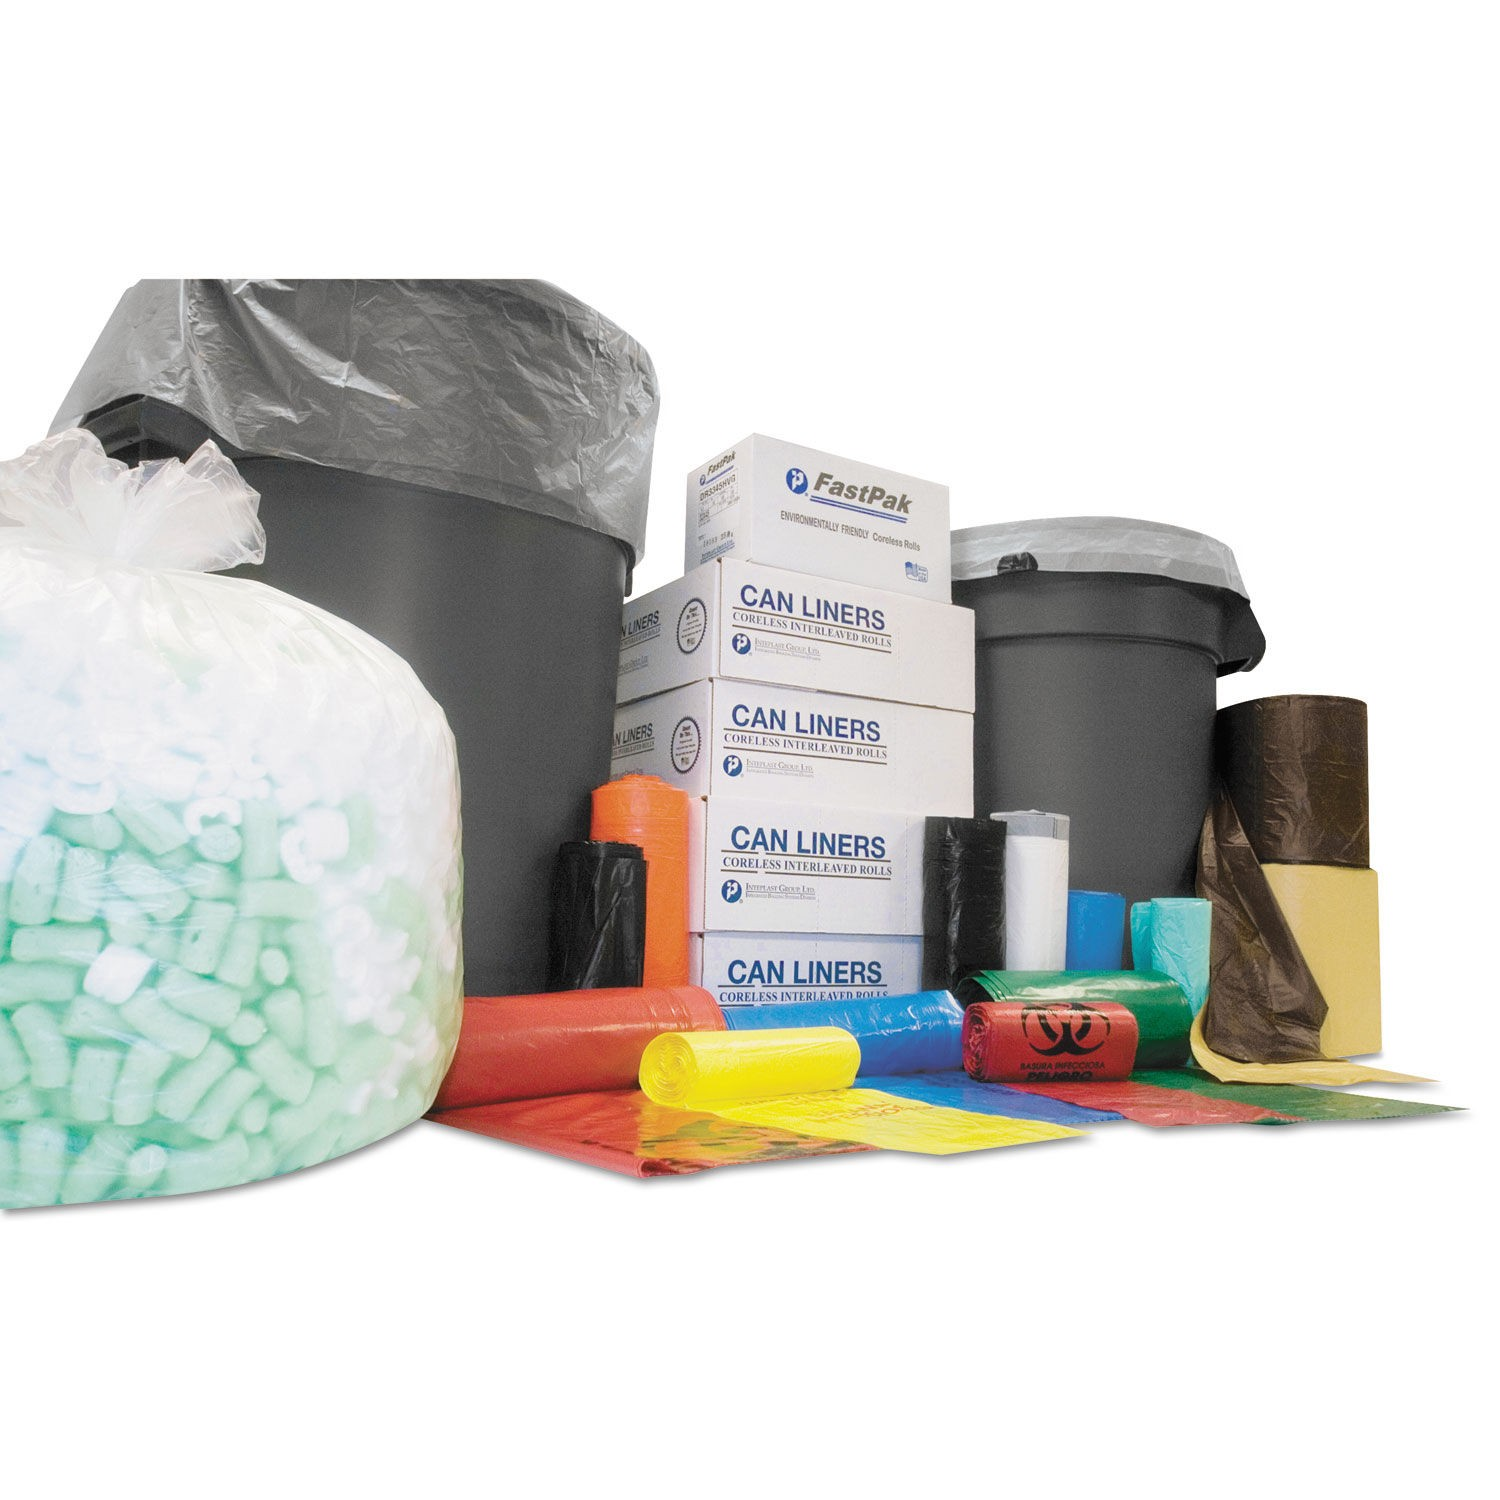 High-Density Interleaved Commercial Can Liners, 60 gal, 12 microns, 38